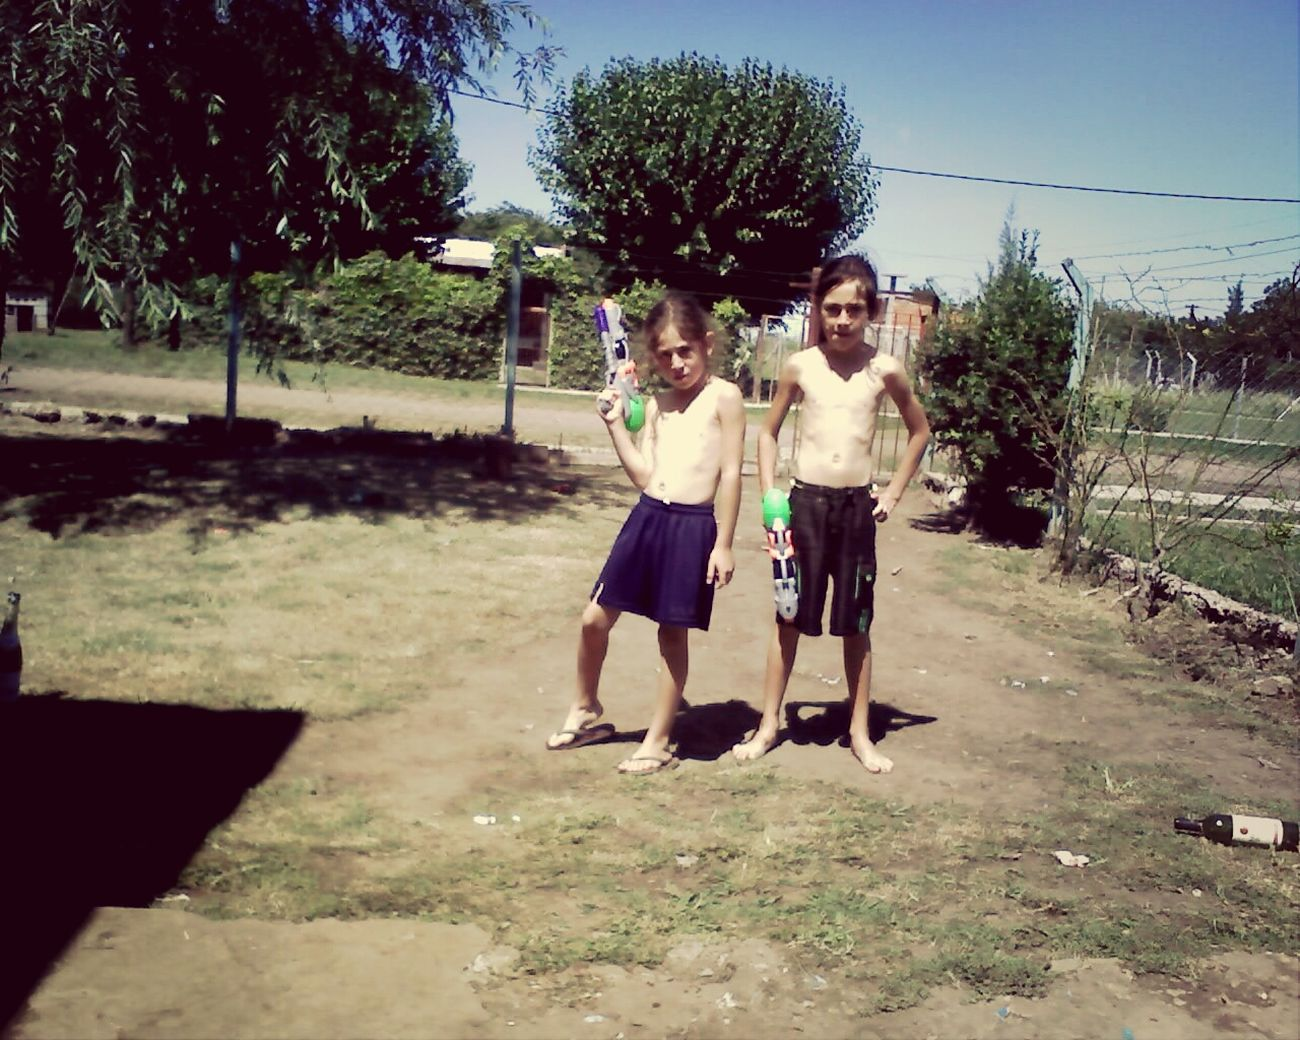 Verano 2007 Brothers PeqUes ;)